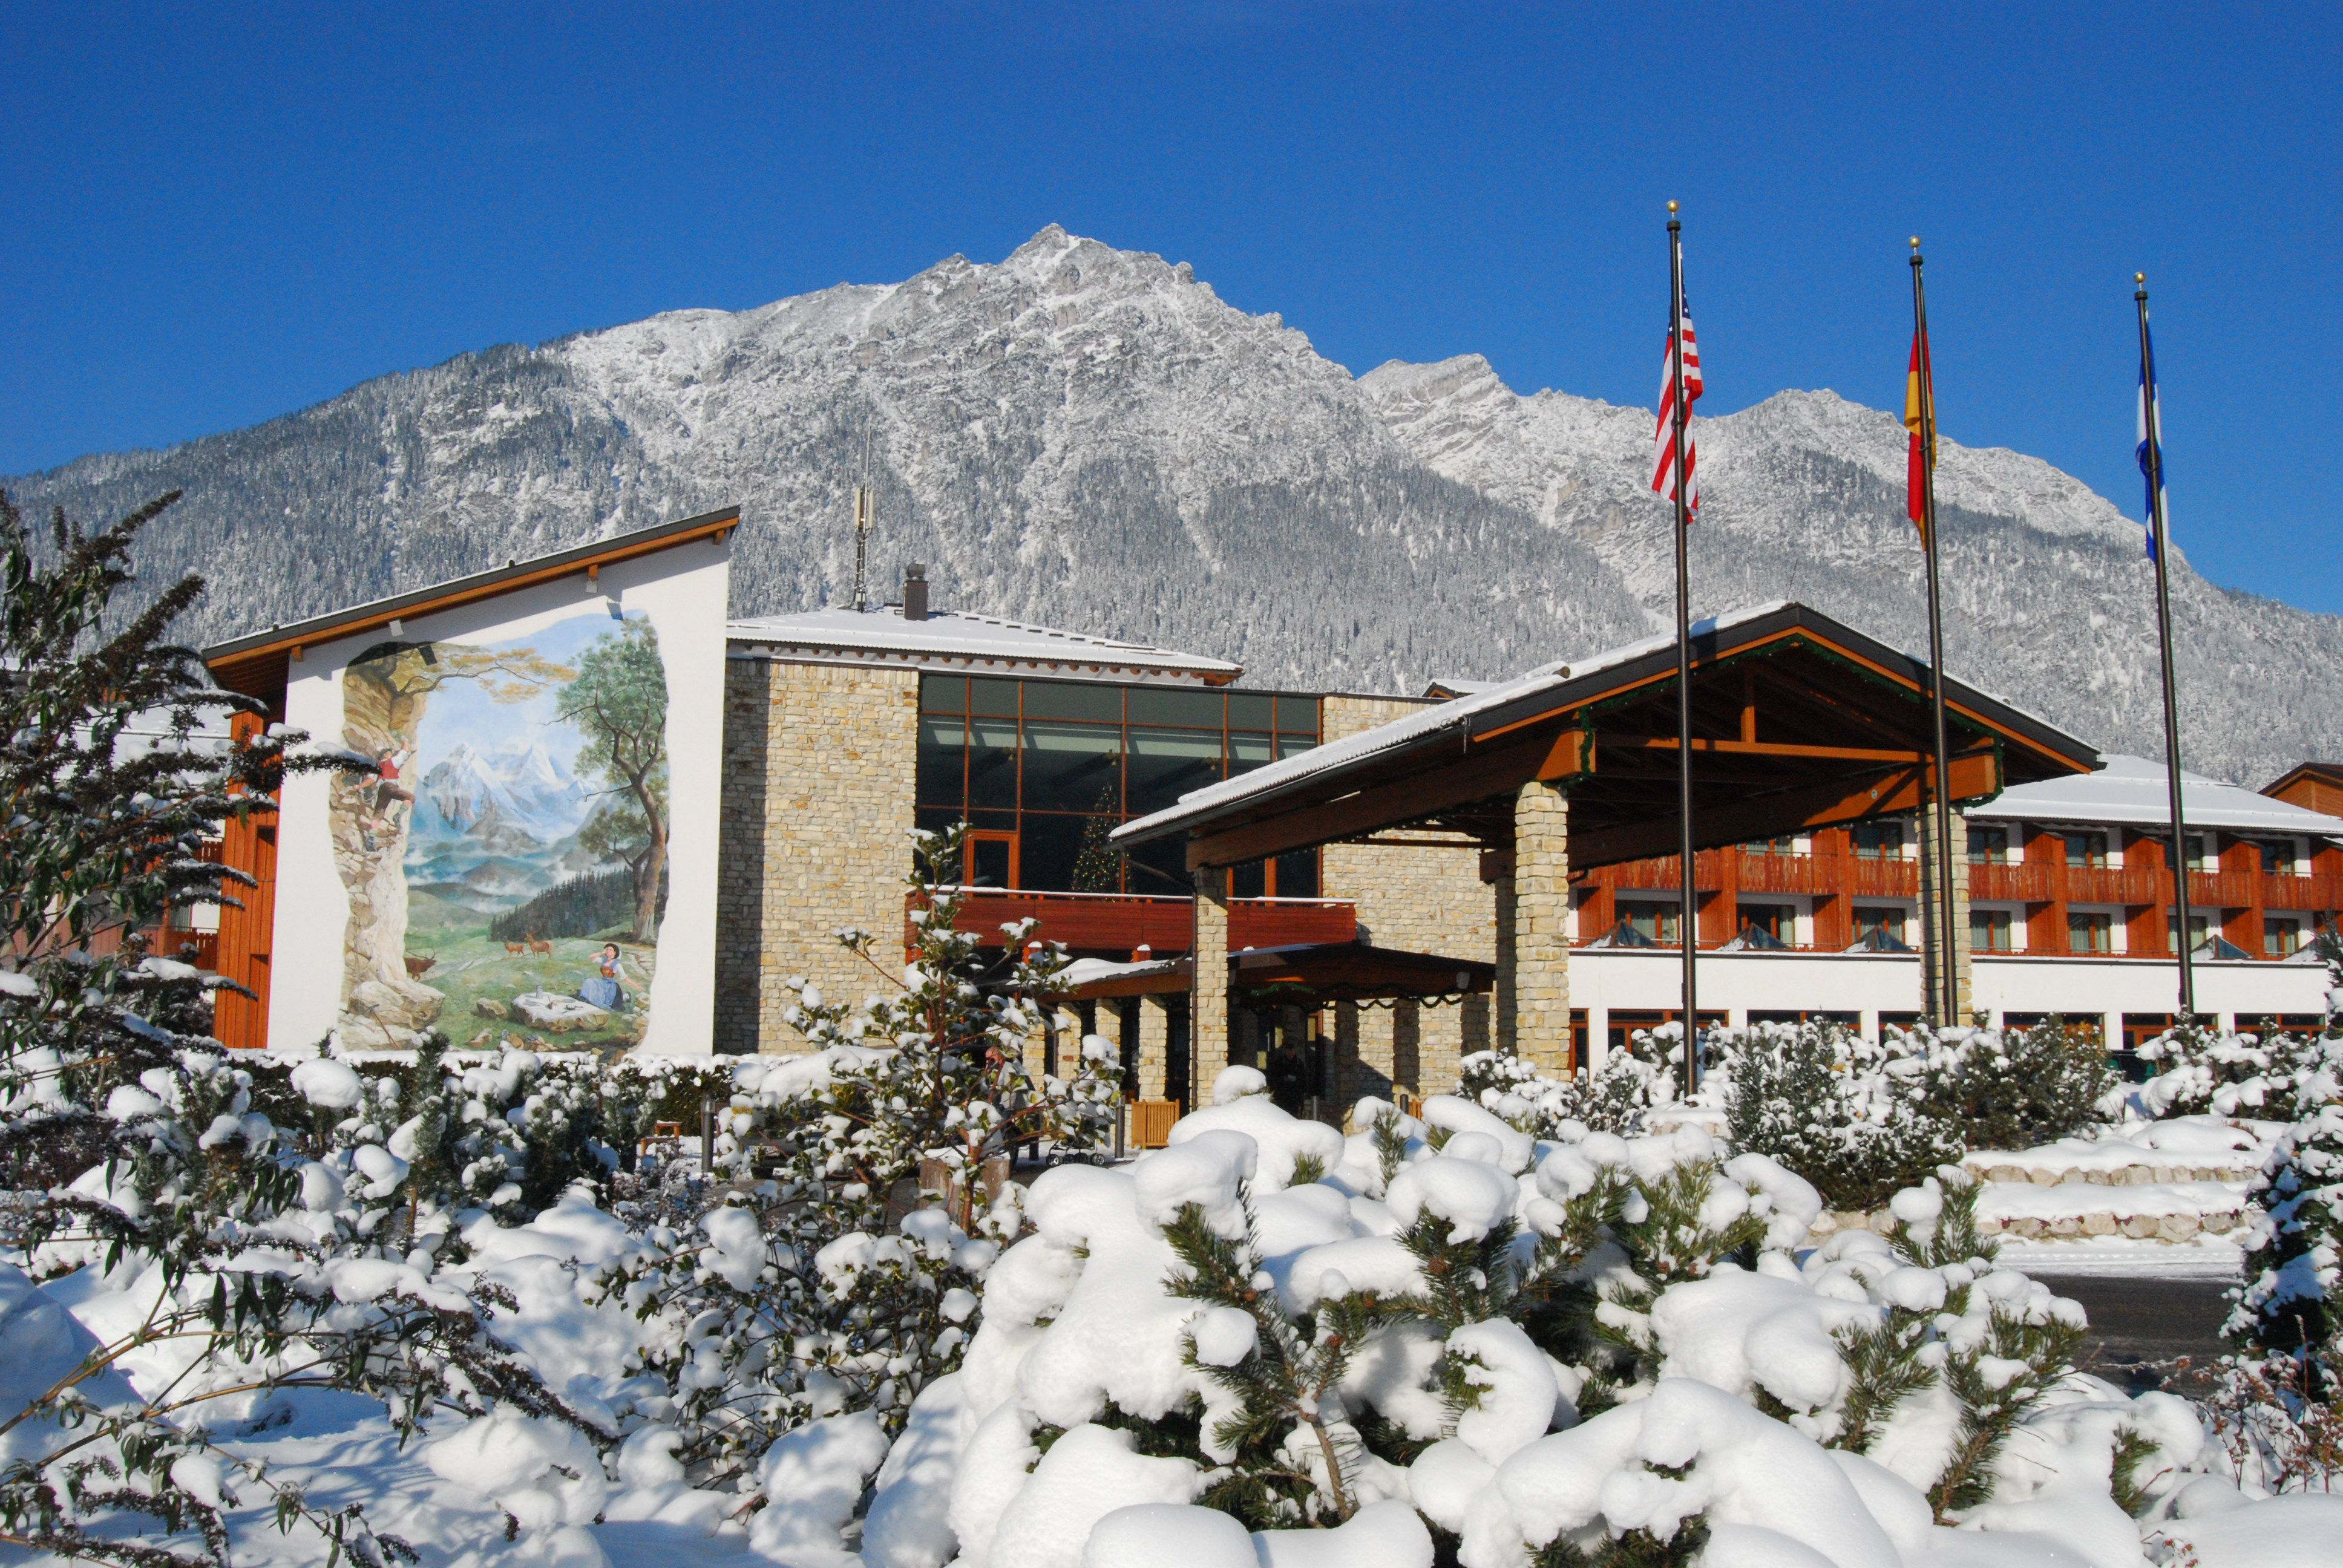 Edelweiss Lodge And Resort In The Winter Edelweissresort With